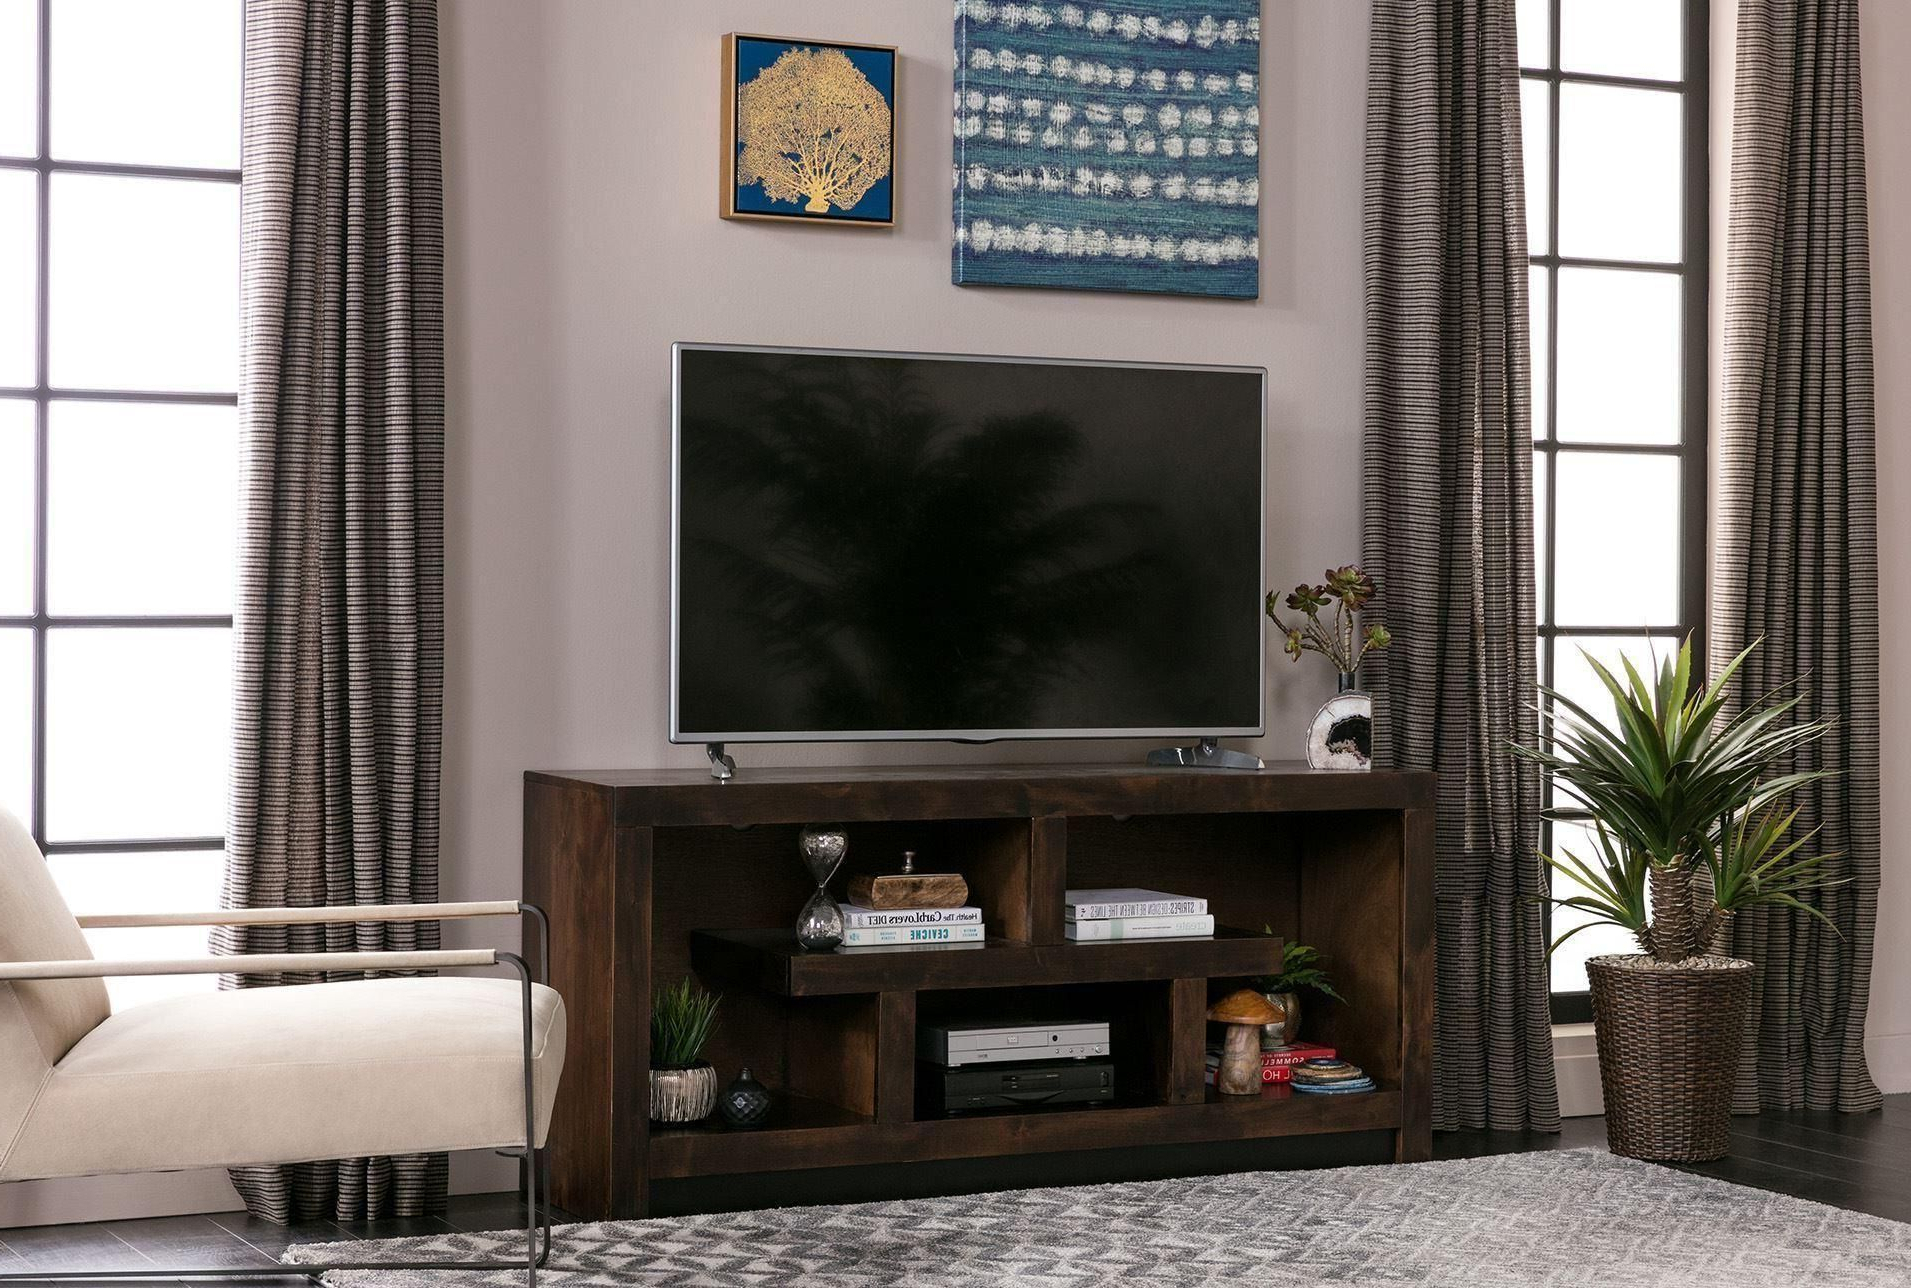 Walton 60 Inch Tv Stand | Rachelle's Redesign | Pinterest | 60 Inch In Walton 60 Inch Tv Stands (View 13 of 20)